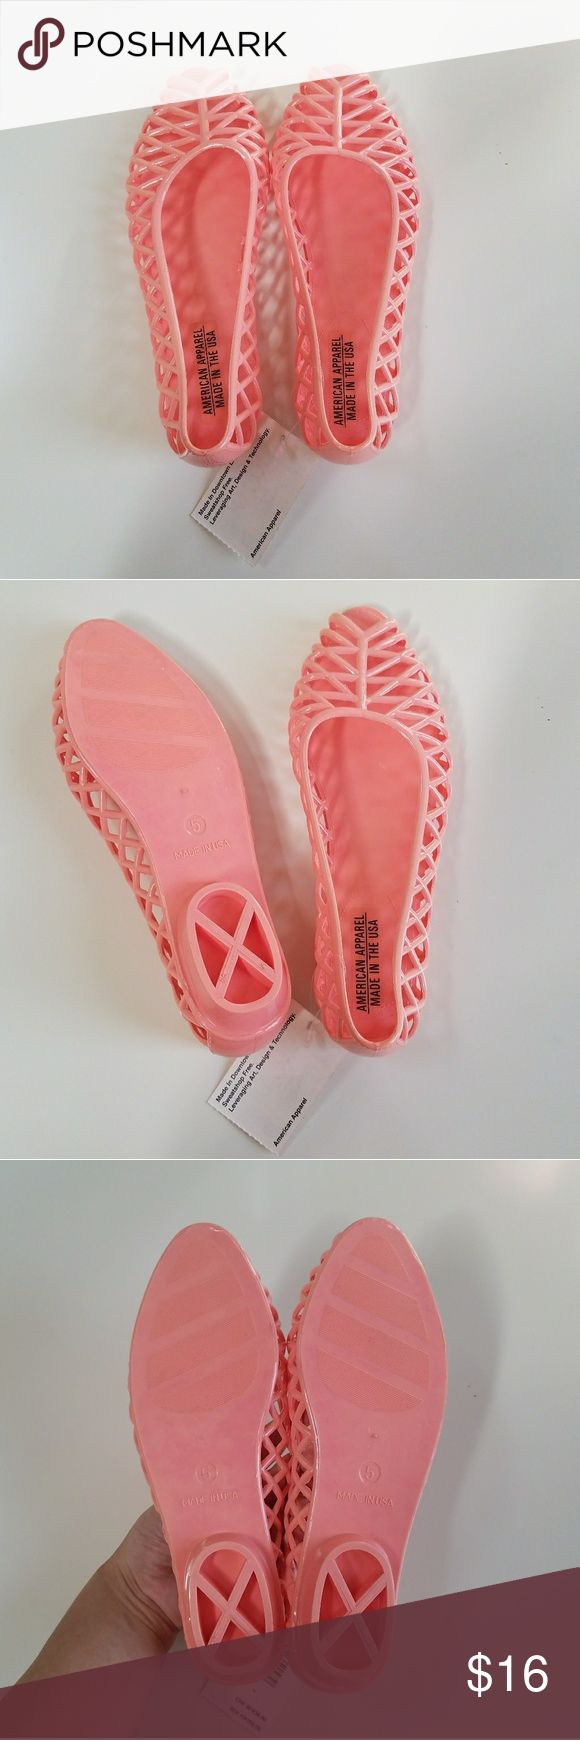 American Apparel Woman Jelly Flats (Coral) American Apparel Woman Jelly Flats (Coral)  -Size: 6US (will fit best if you fit a 5.5US) American Apparel Shoes Flats & Loafers